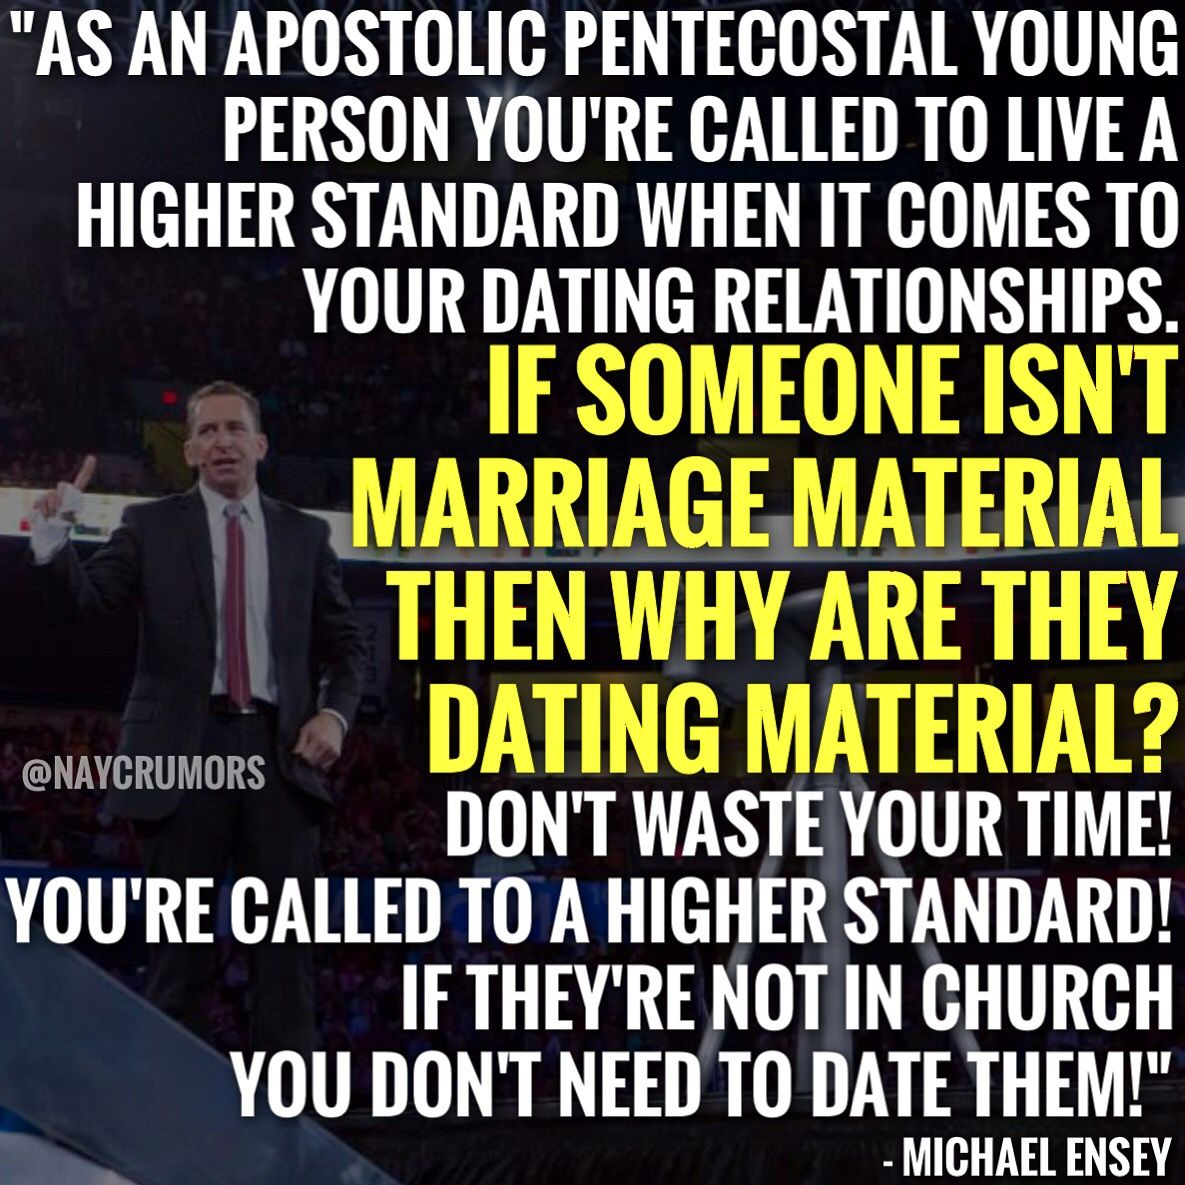 6 Dating Standards for Apostolic Singles